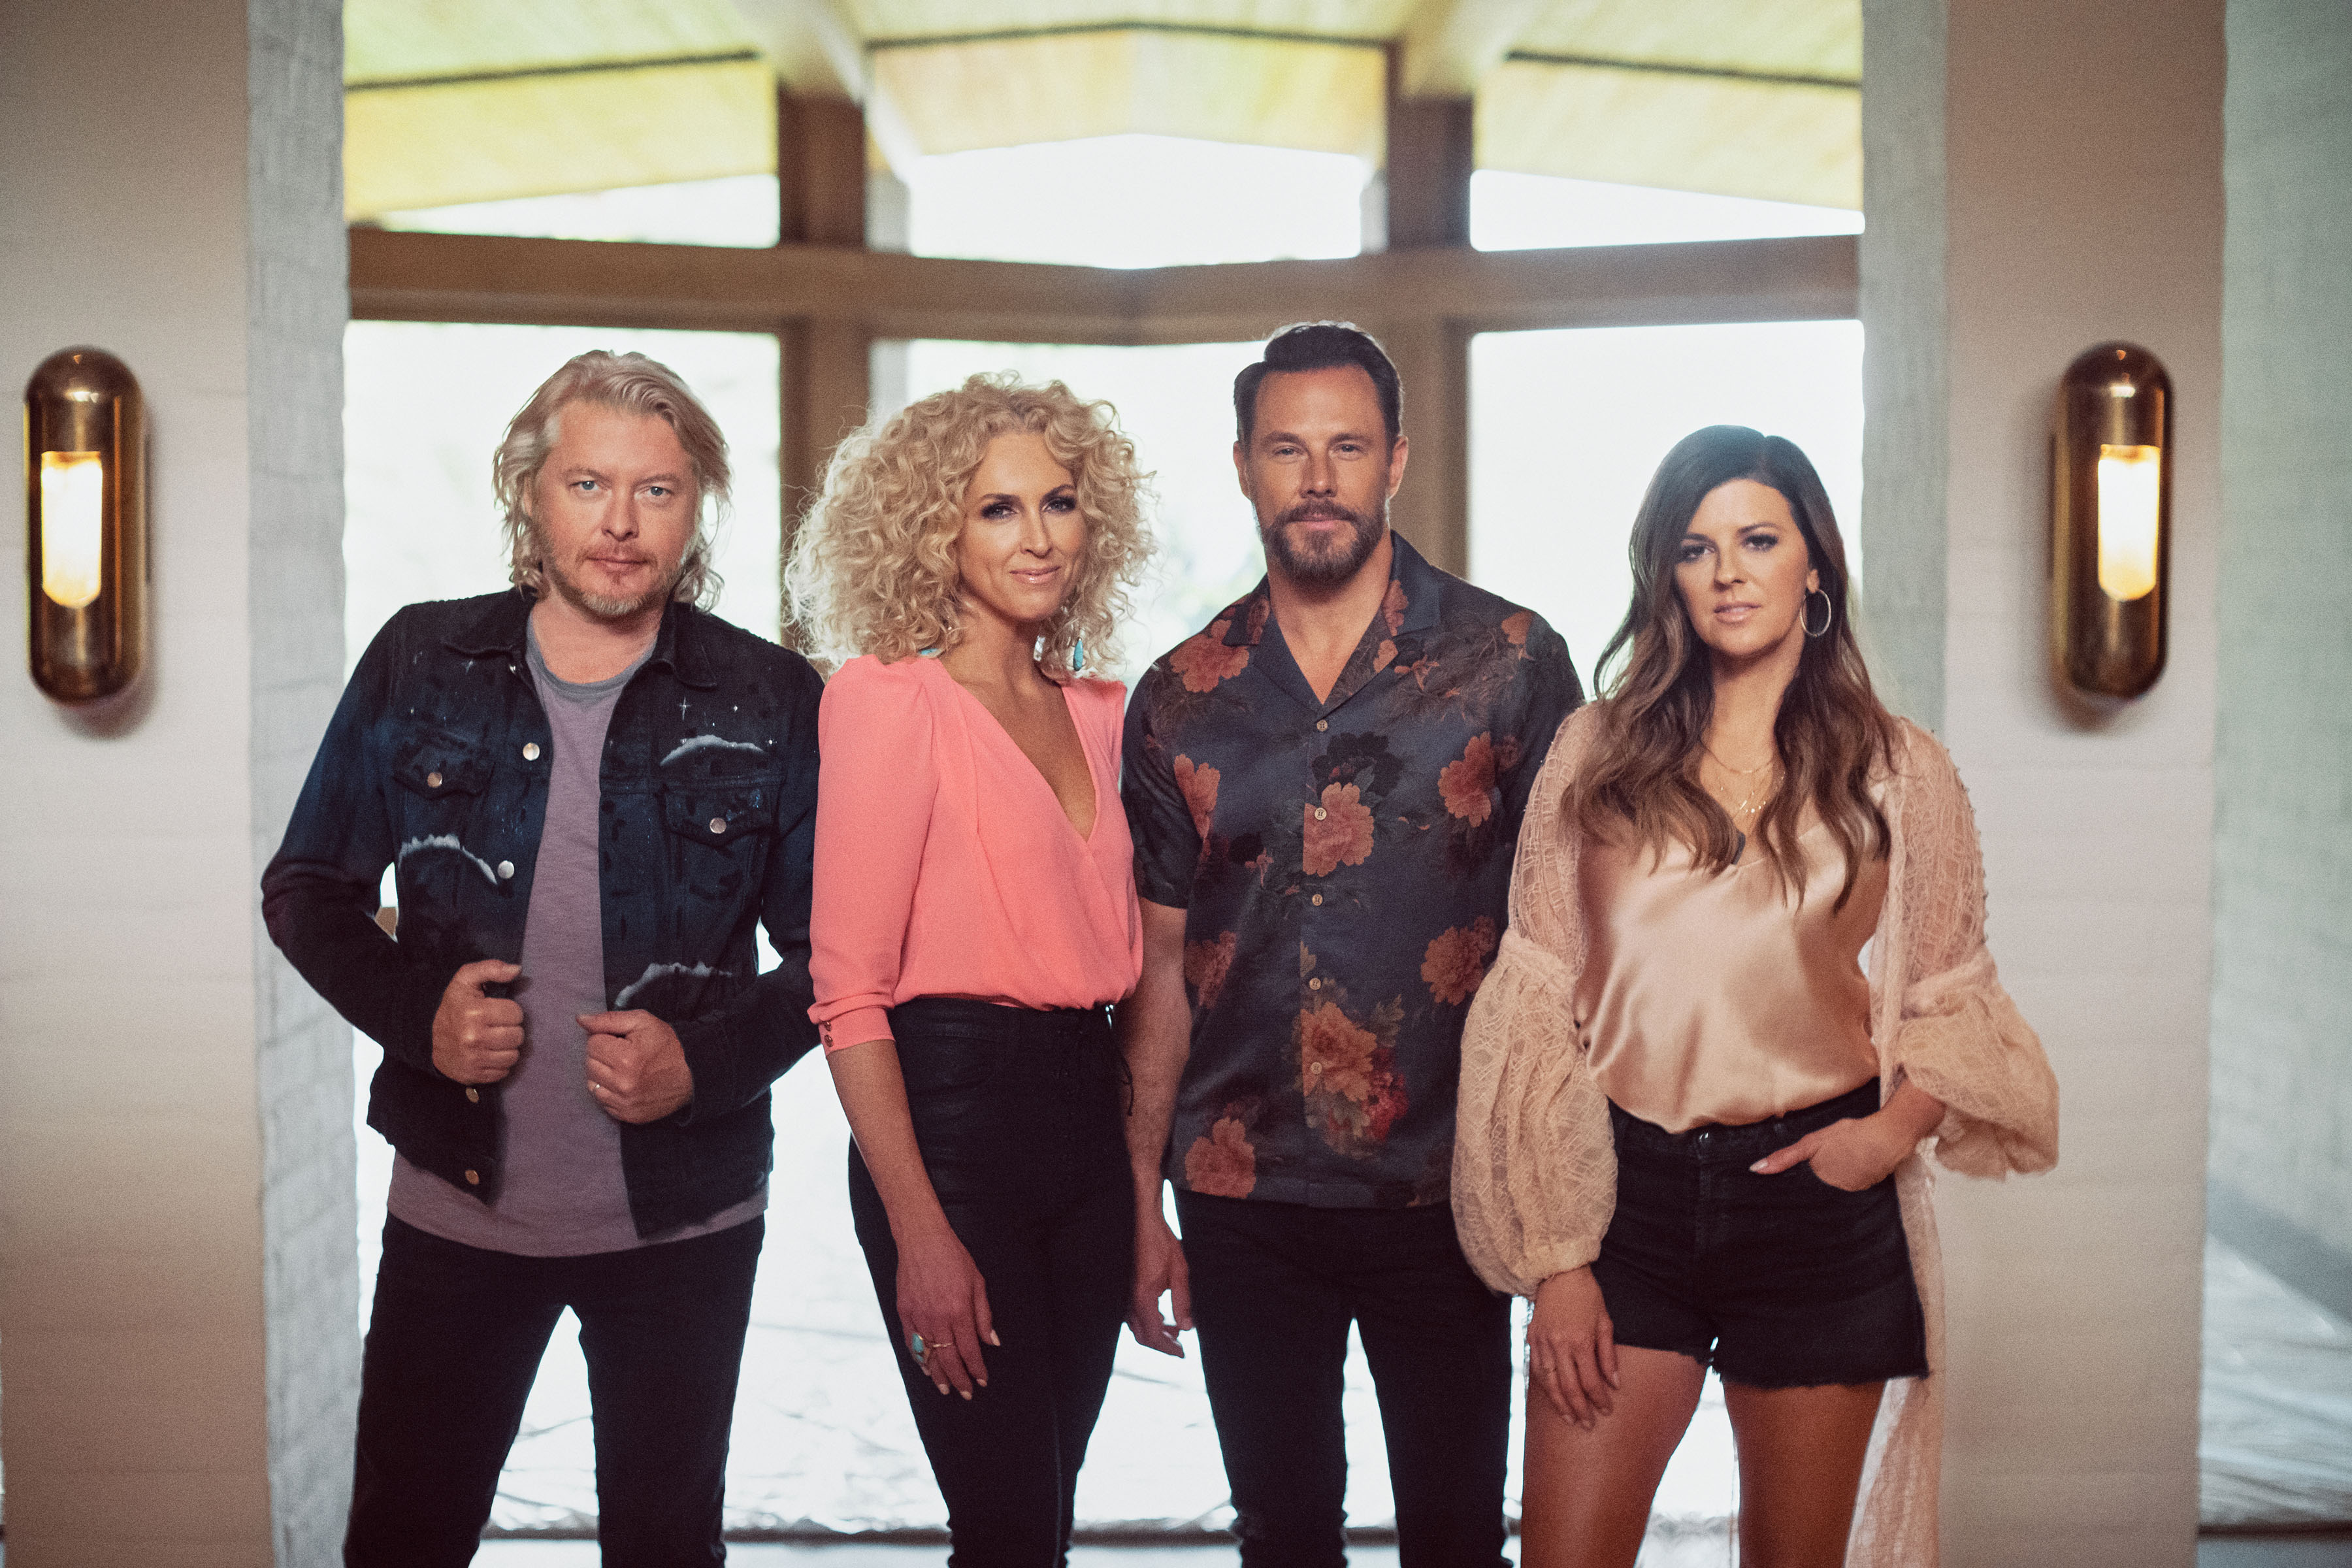 LITTLE BIG TOWN DEBUTS AT THE TOP OF THE BILLBOARD COUNTRY ALBUM CHART THIS WEEK WITH NIGHTFALL.